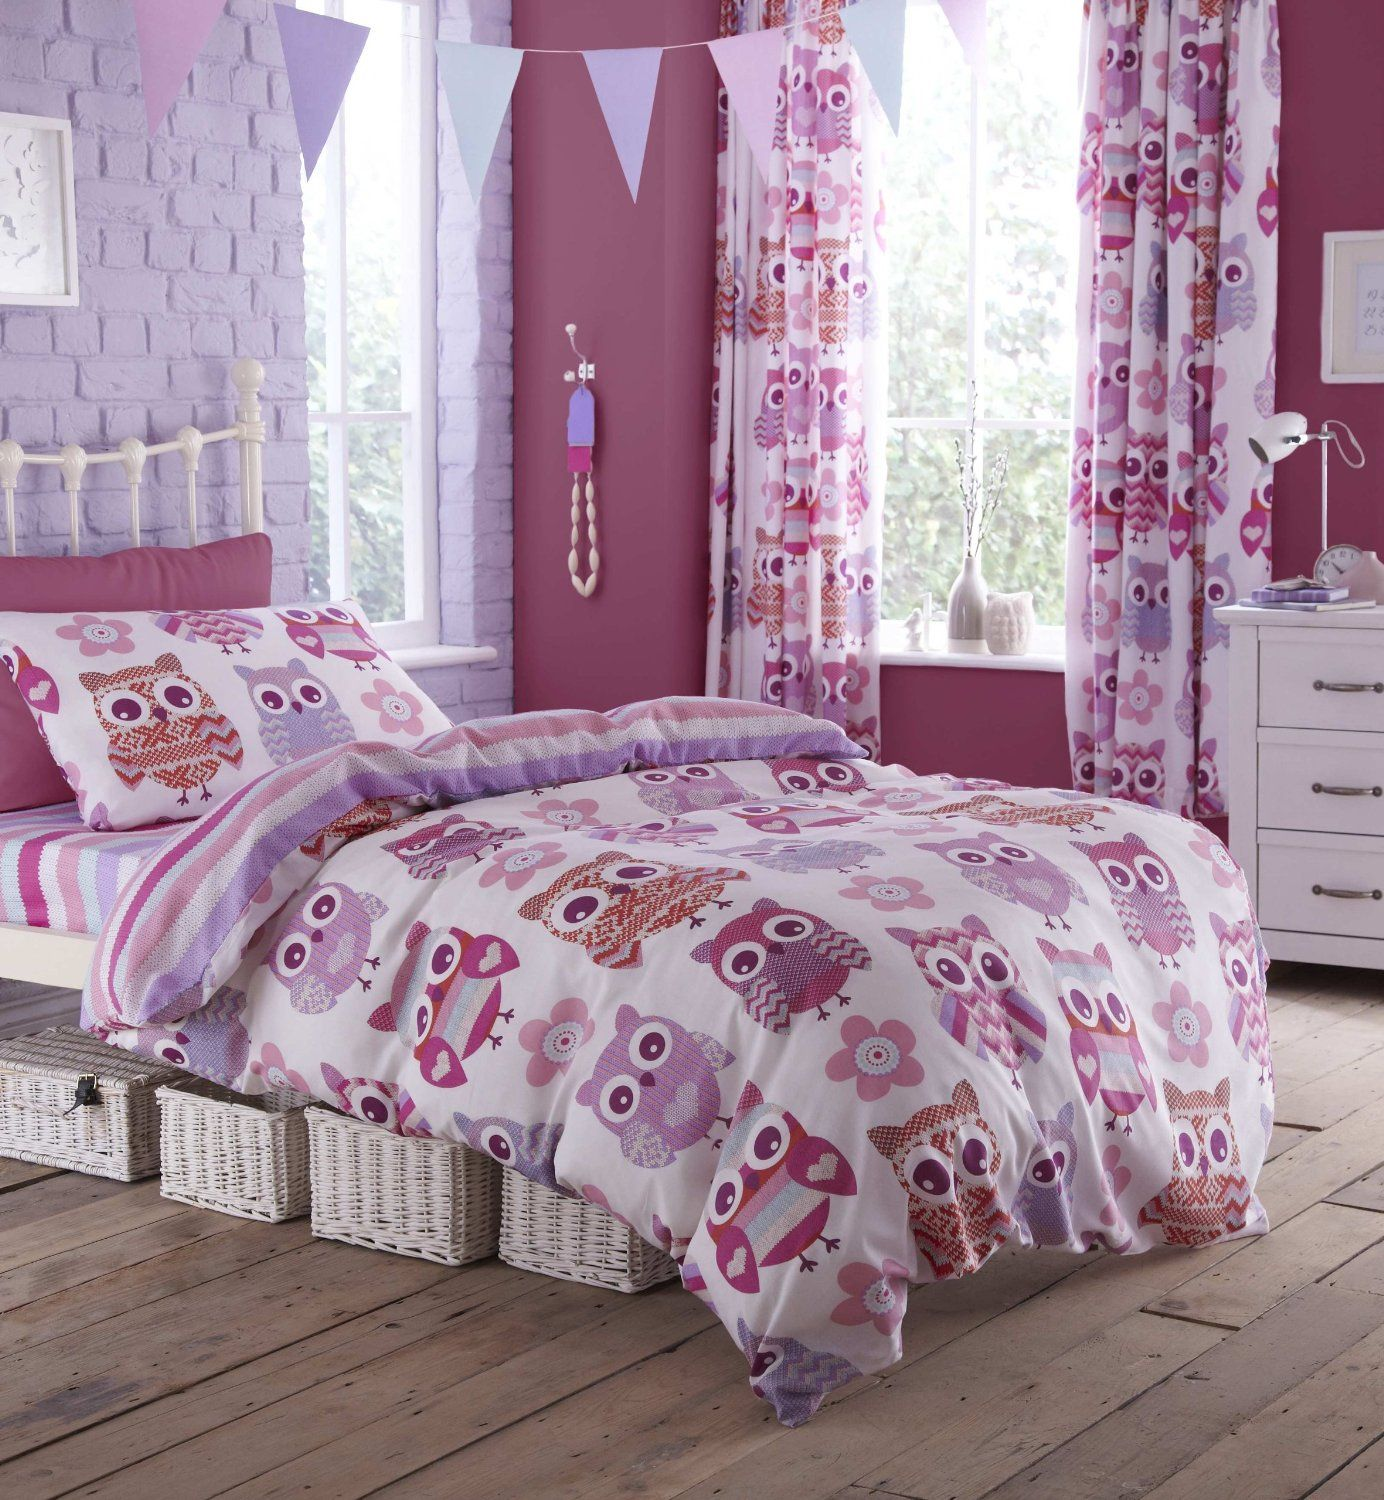 Colourful Print Catherine Lansfield Owl Single Duvet Set This Cover Fits A Standard Bed It Is Manufactured From Soft Cotton Rich